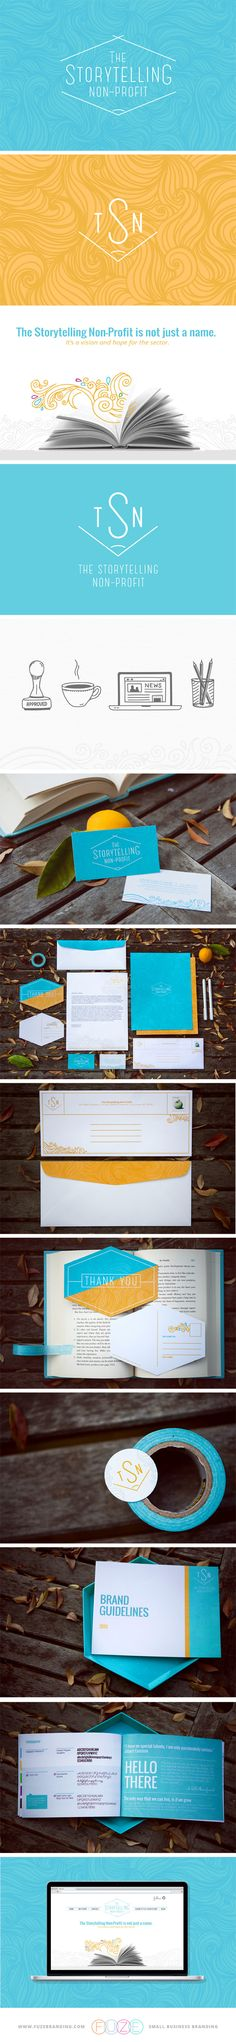 Fuze Branding | Brand Identity Design for The Storytelling Non-profit!